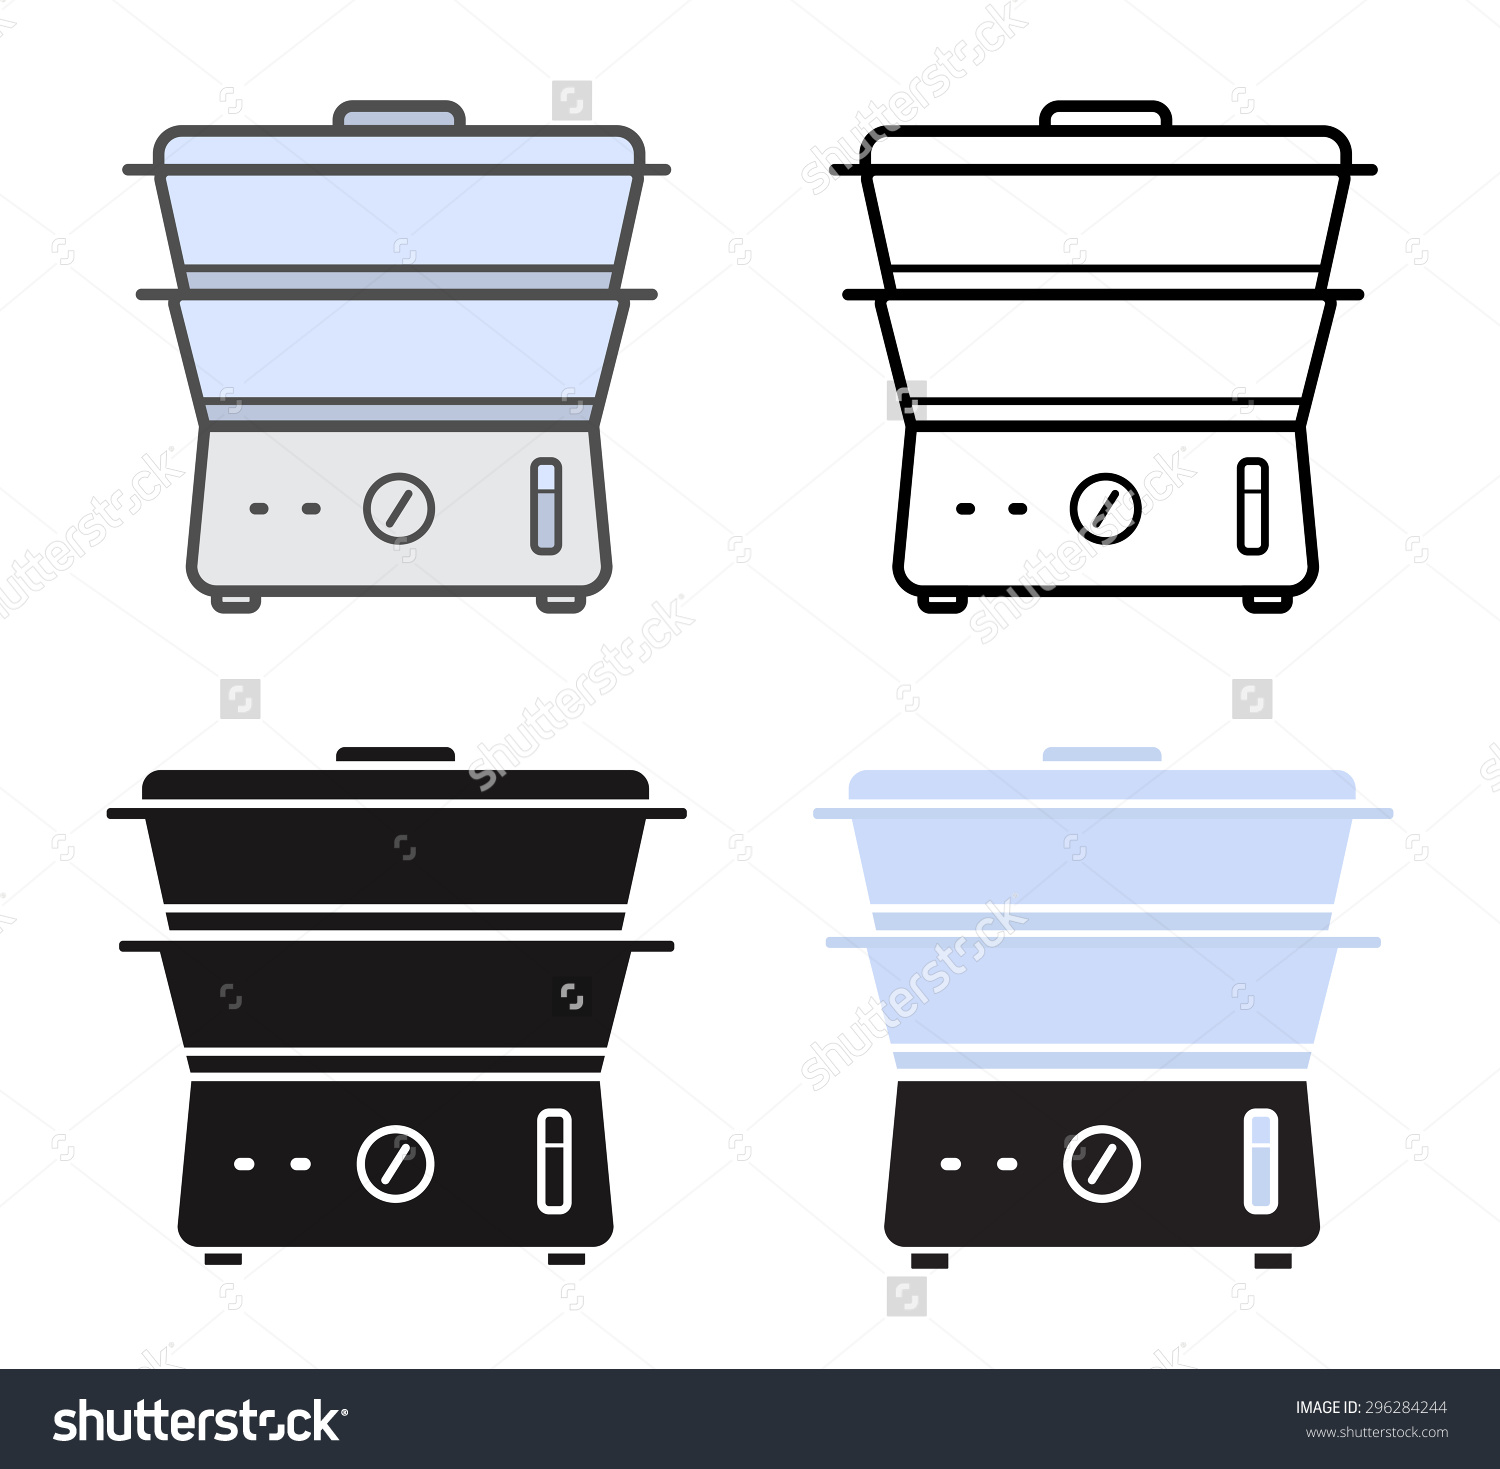 Kitchen Electric Steamer Icons. Color, Contour Lines, Silhouette.